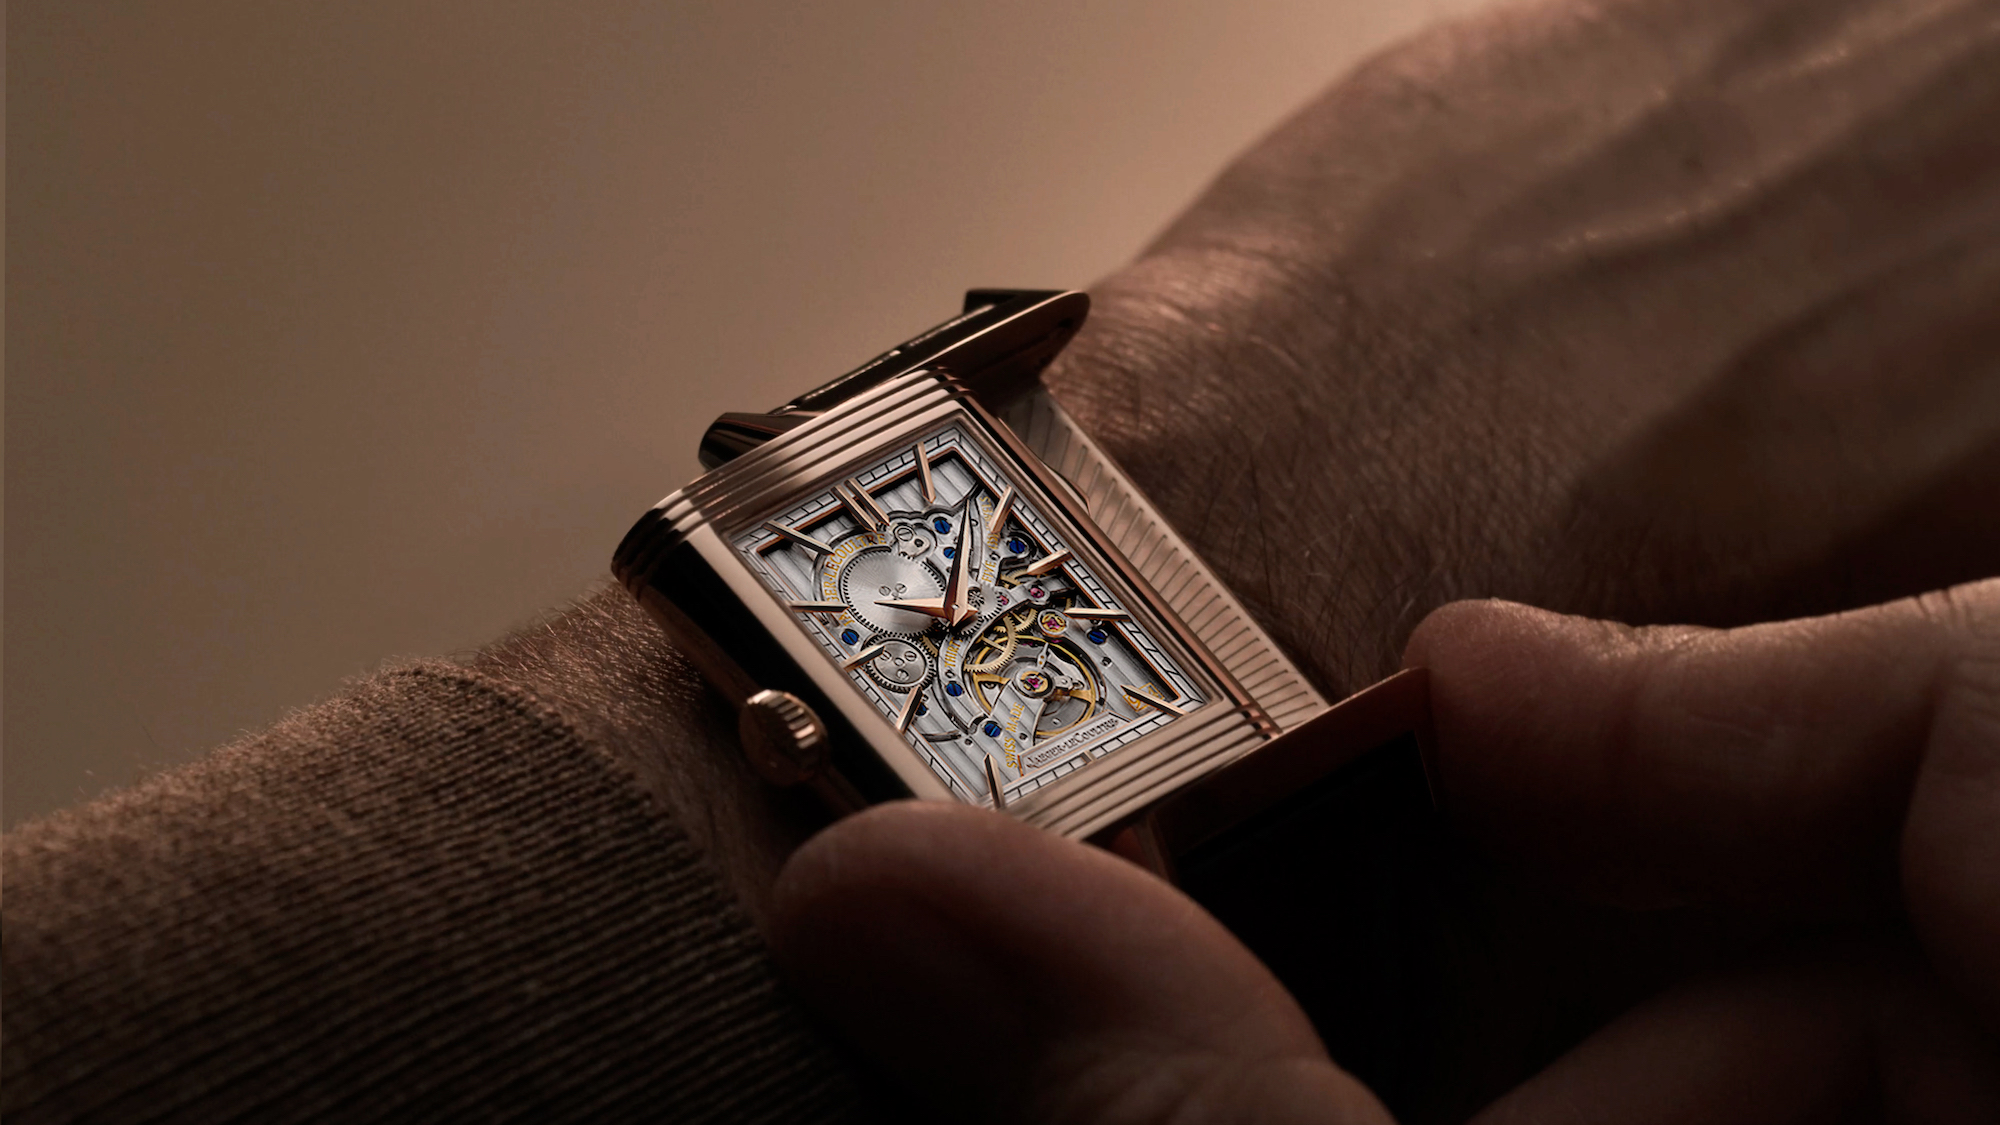 Jaeger-LeCoultre Reverso Tribute Minute Repeater Lifestyle wristshot verso